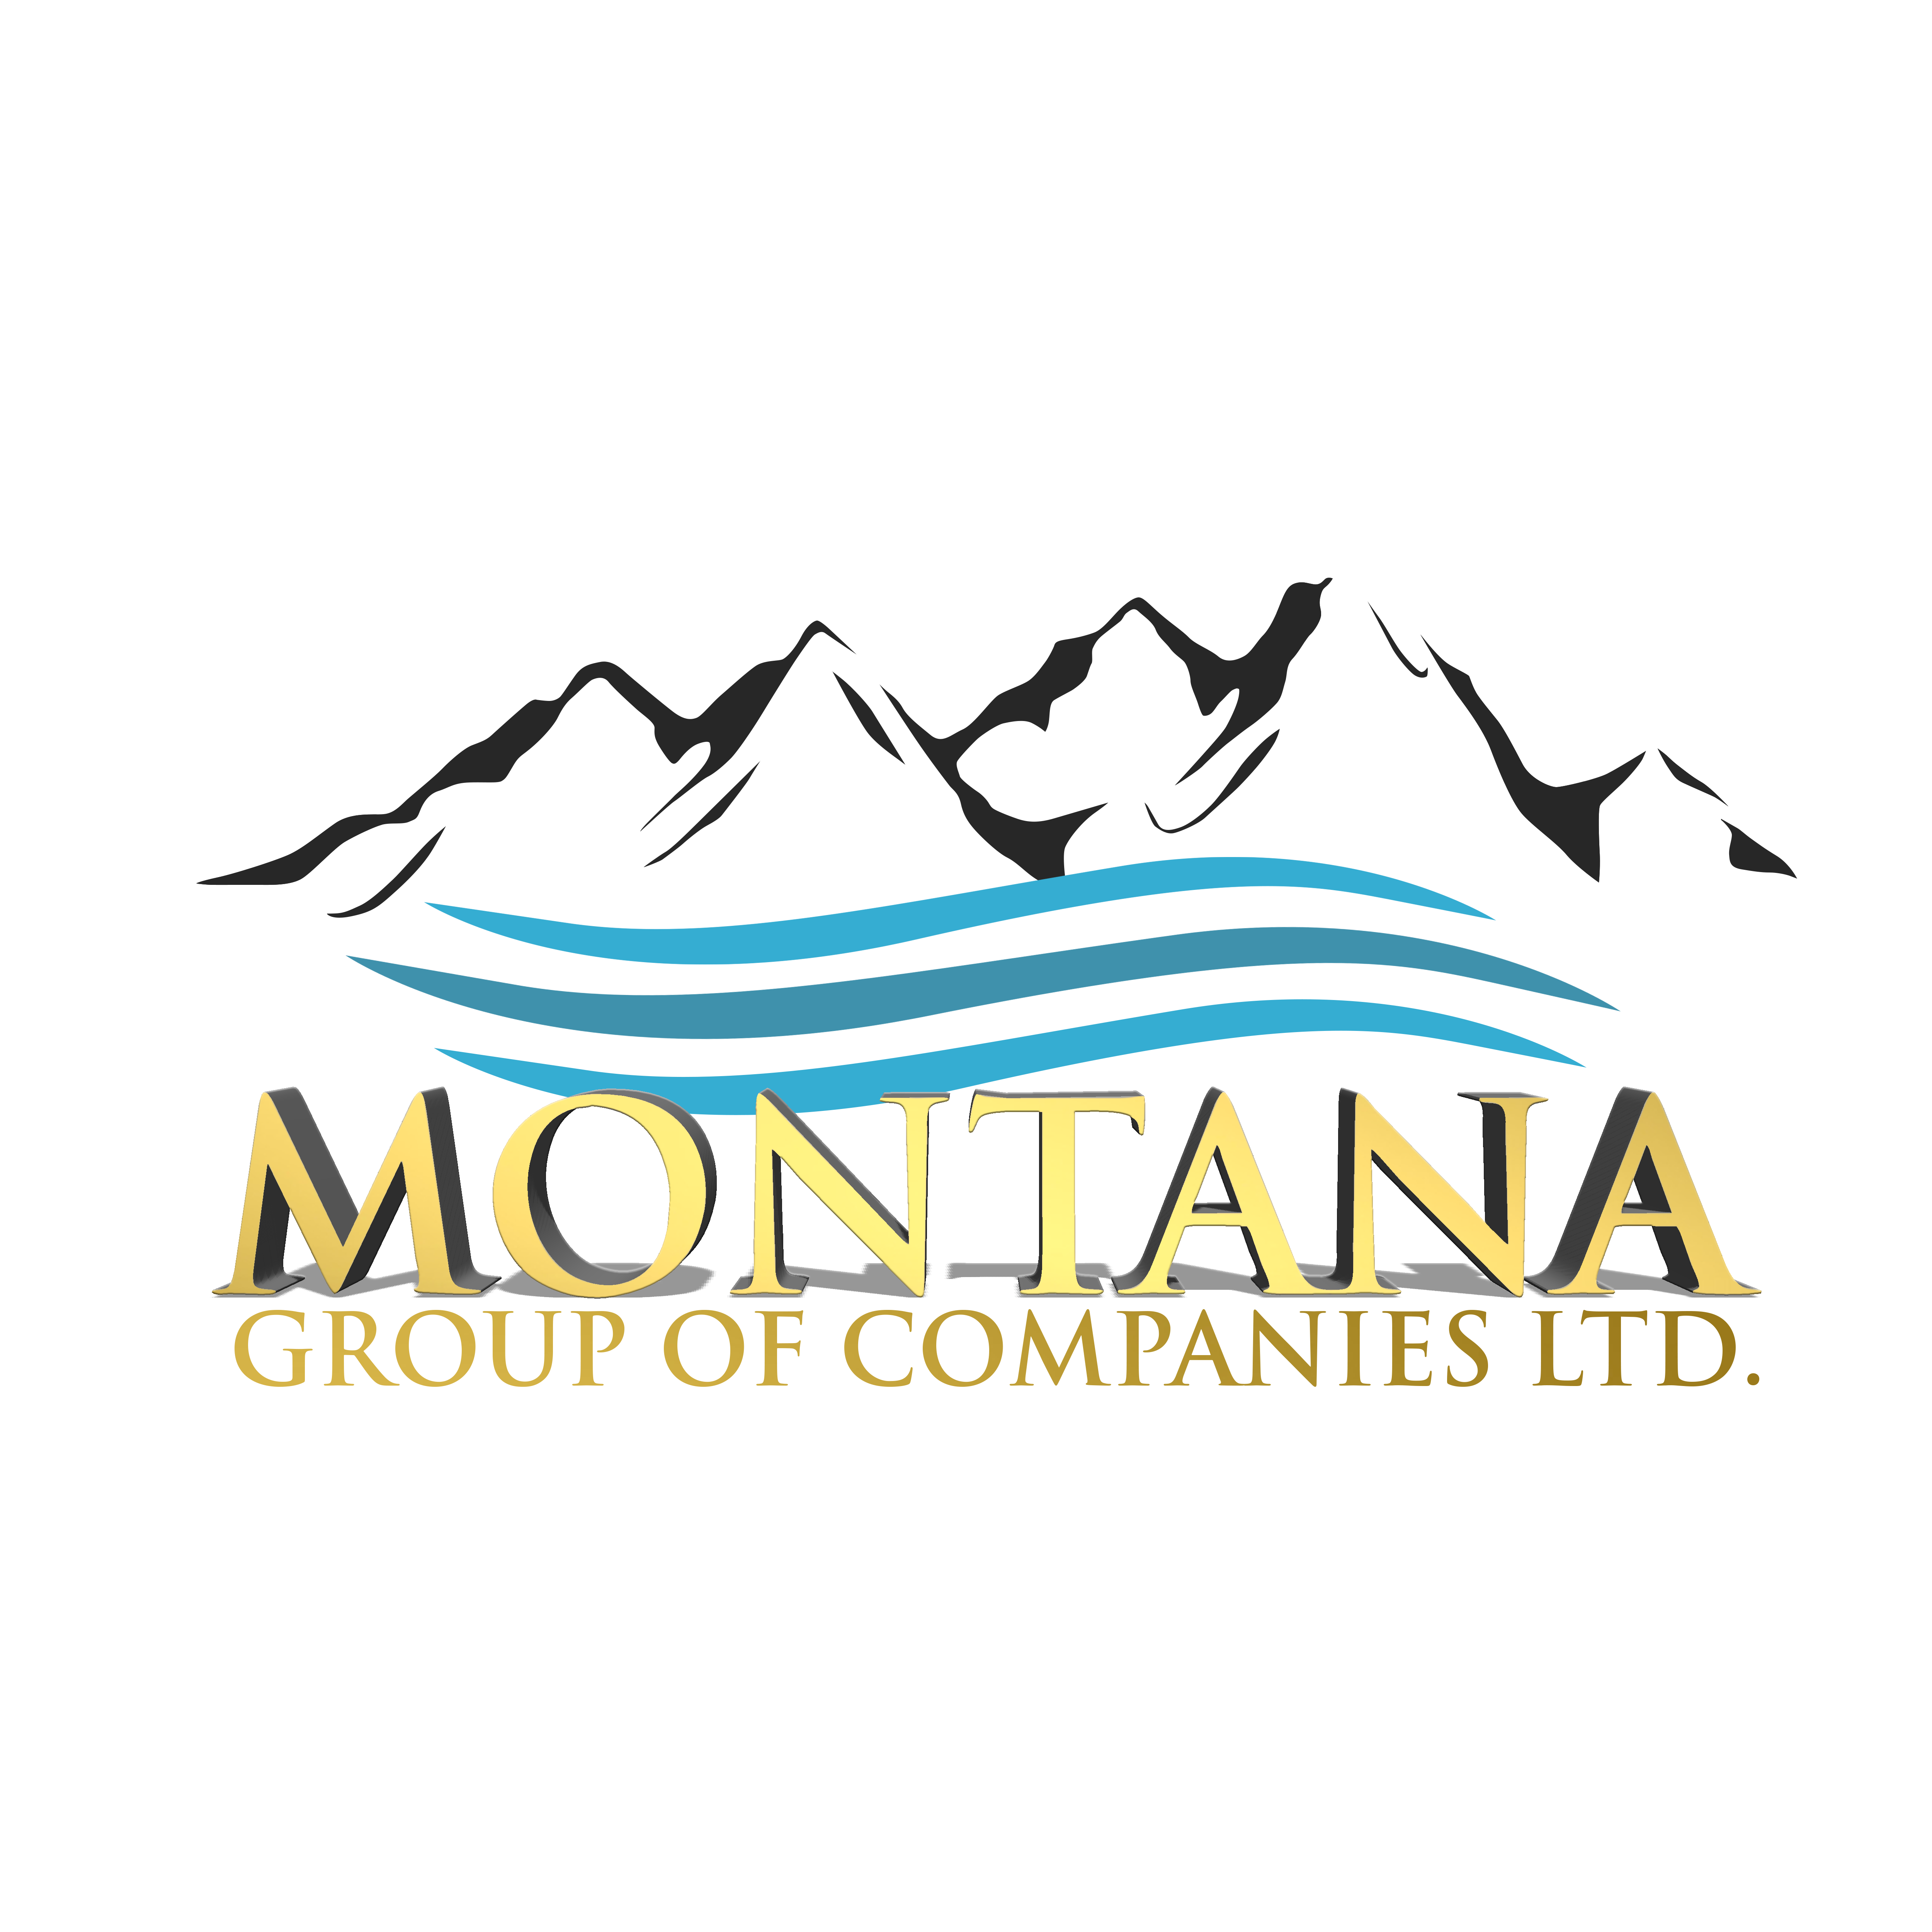 logo image of a transportation carrier Montana Group of Companies